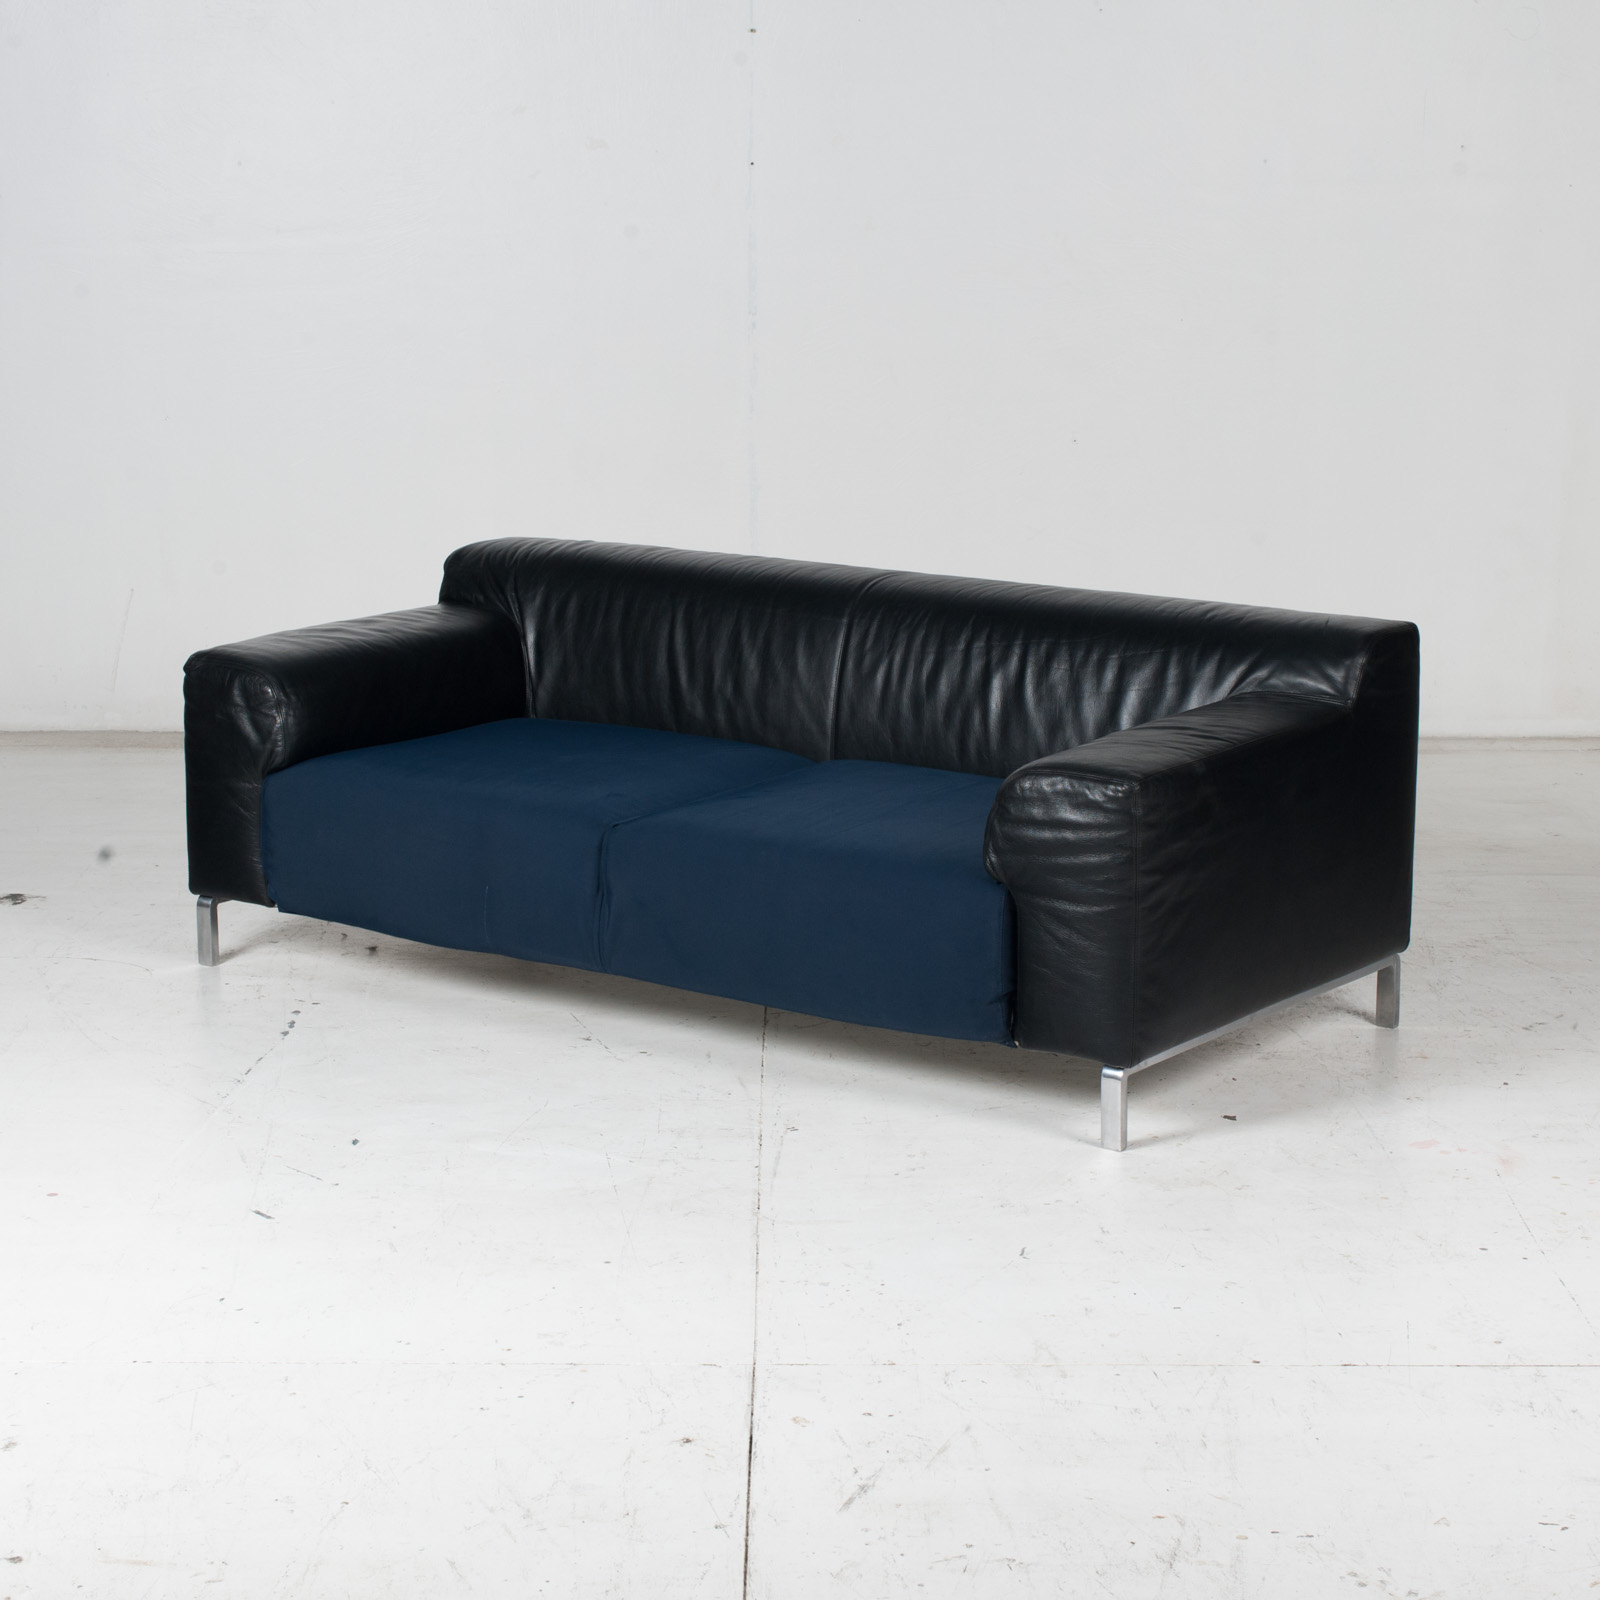 Model Greg 2 Seat Sofa By E. Progetti With Back Upholstered In Black Leather And Seat In Blue Fabric With Chrome Legs, 1960s, Italy 4